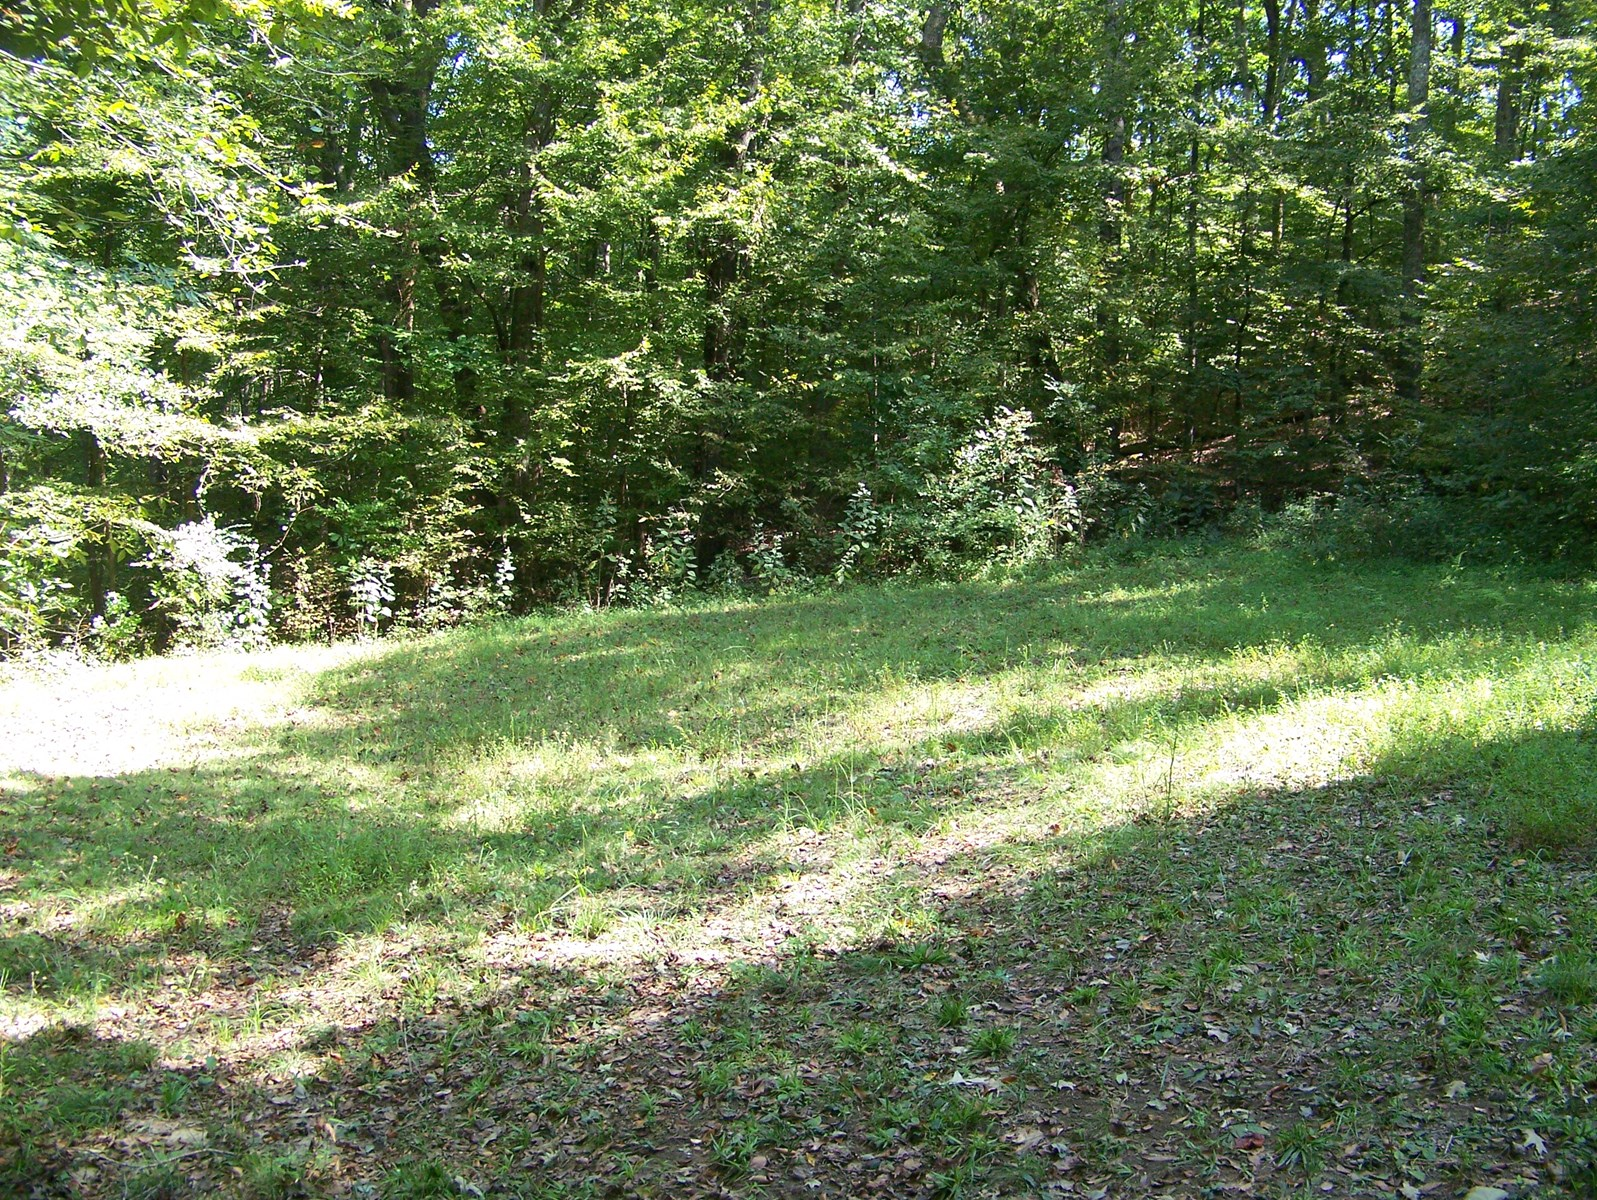 Tennessee Land For Sale With Natural Spring, Near Fishing